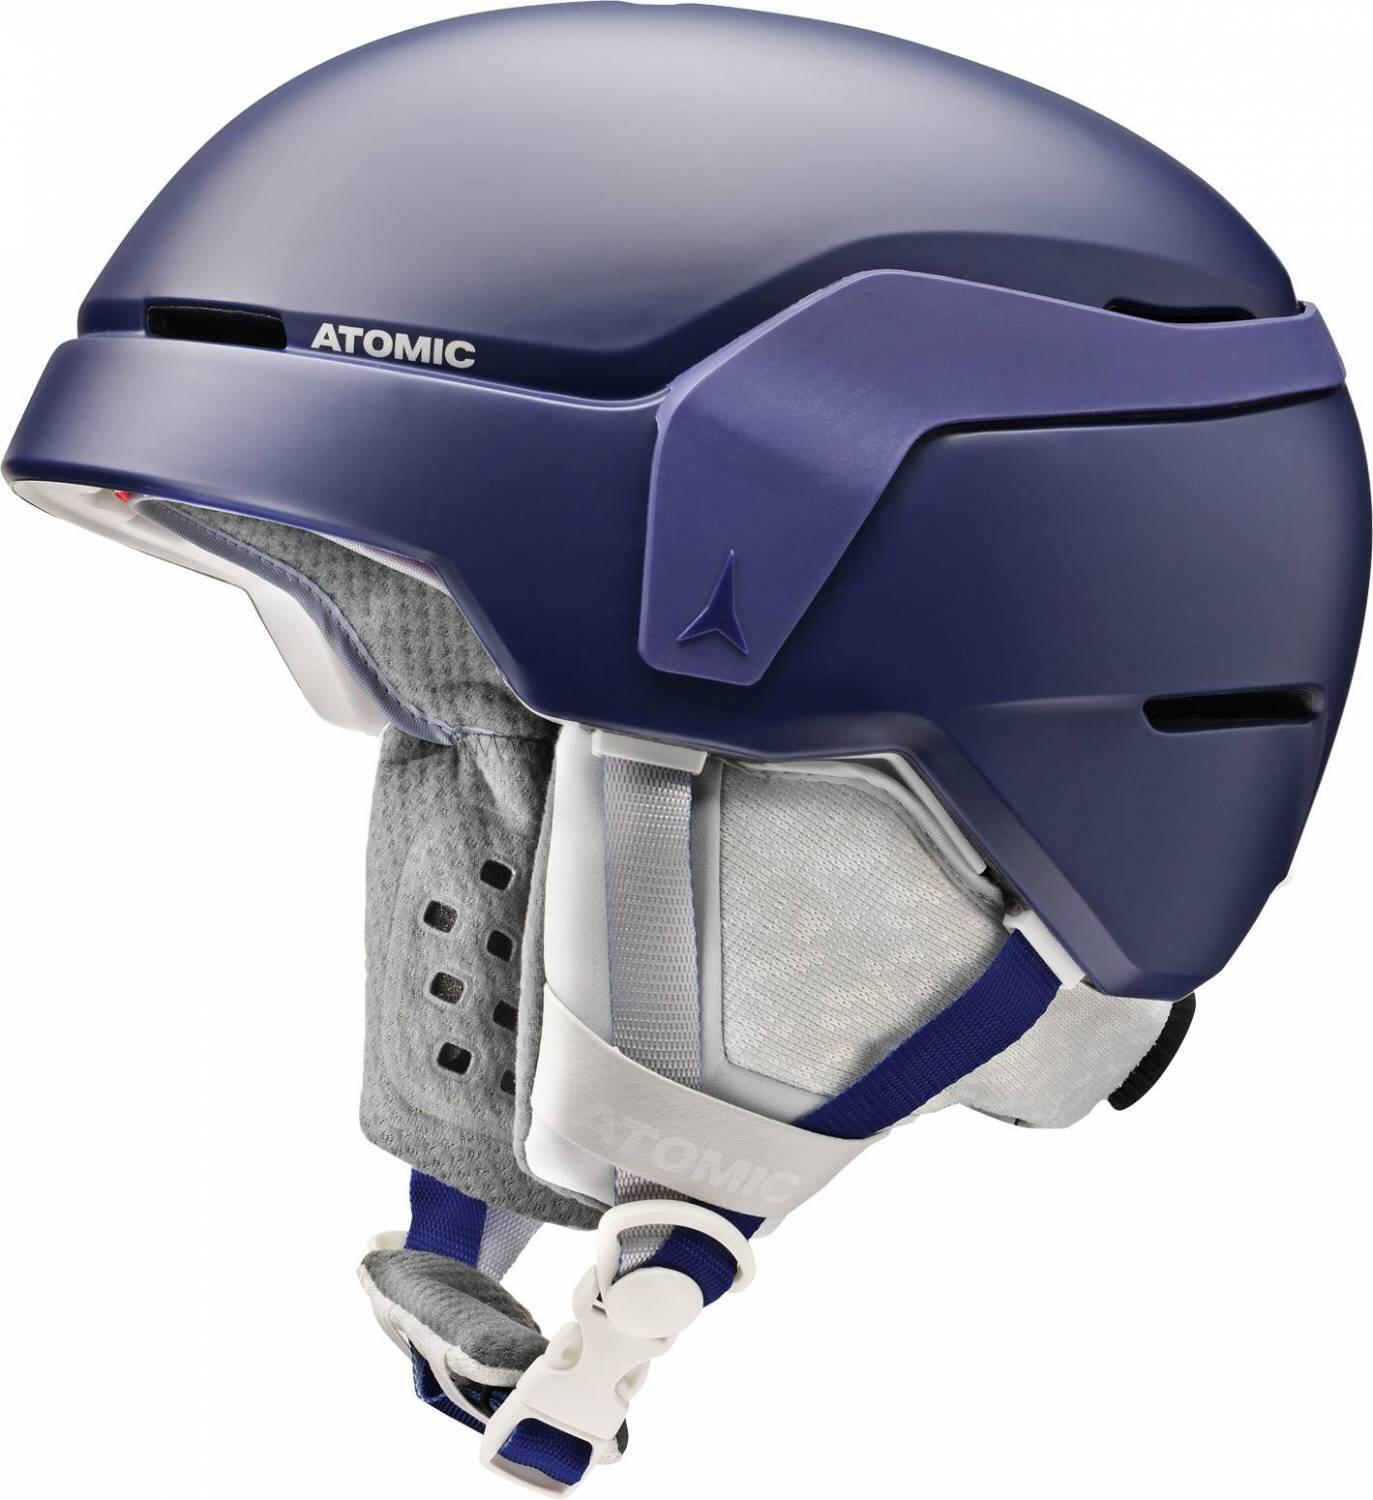 atomic-count-skihelm-gr-ouml-szlig-e-55-59-cm-purple-